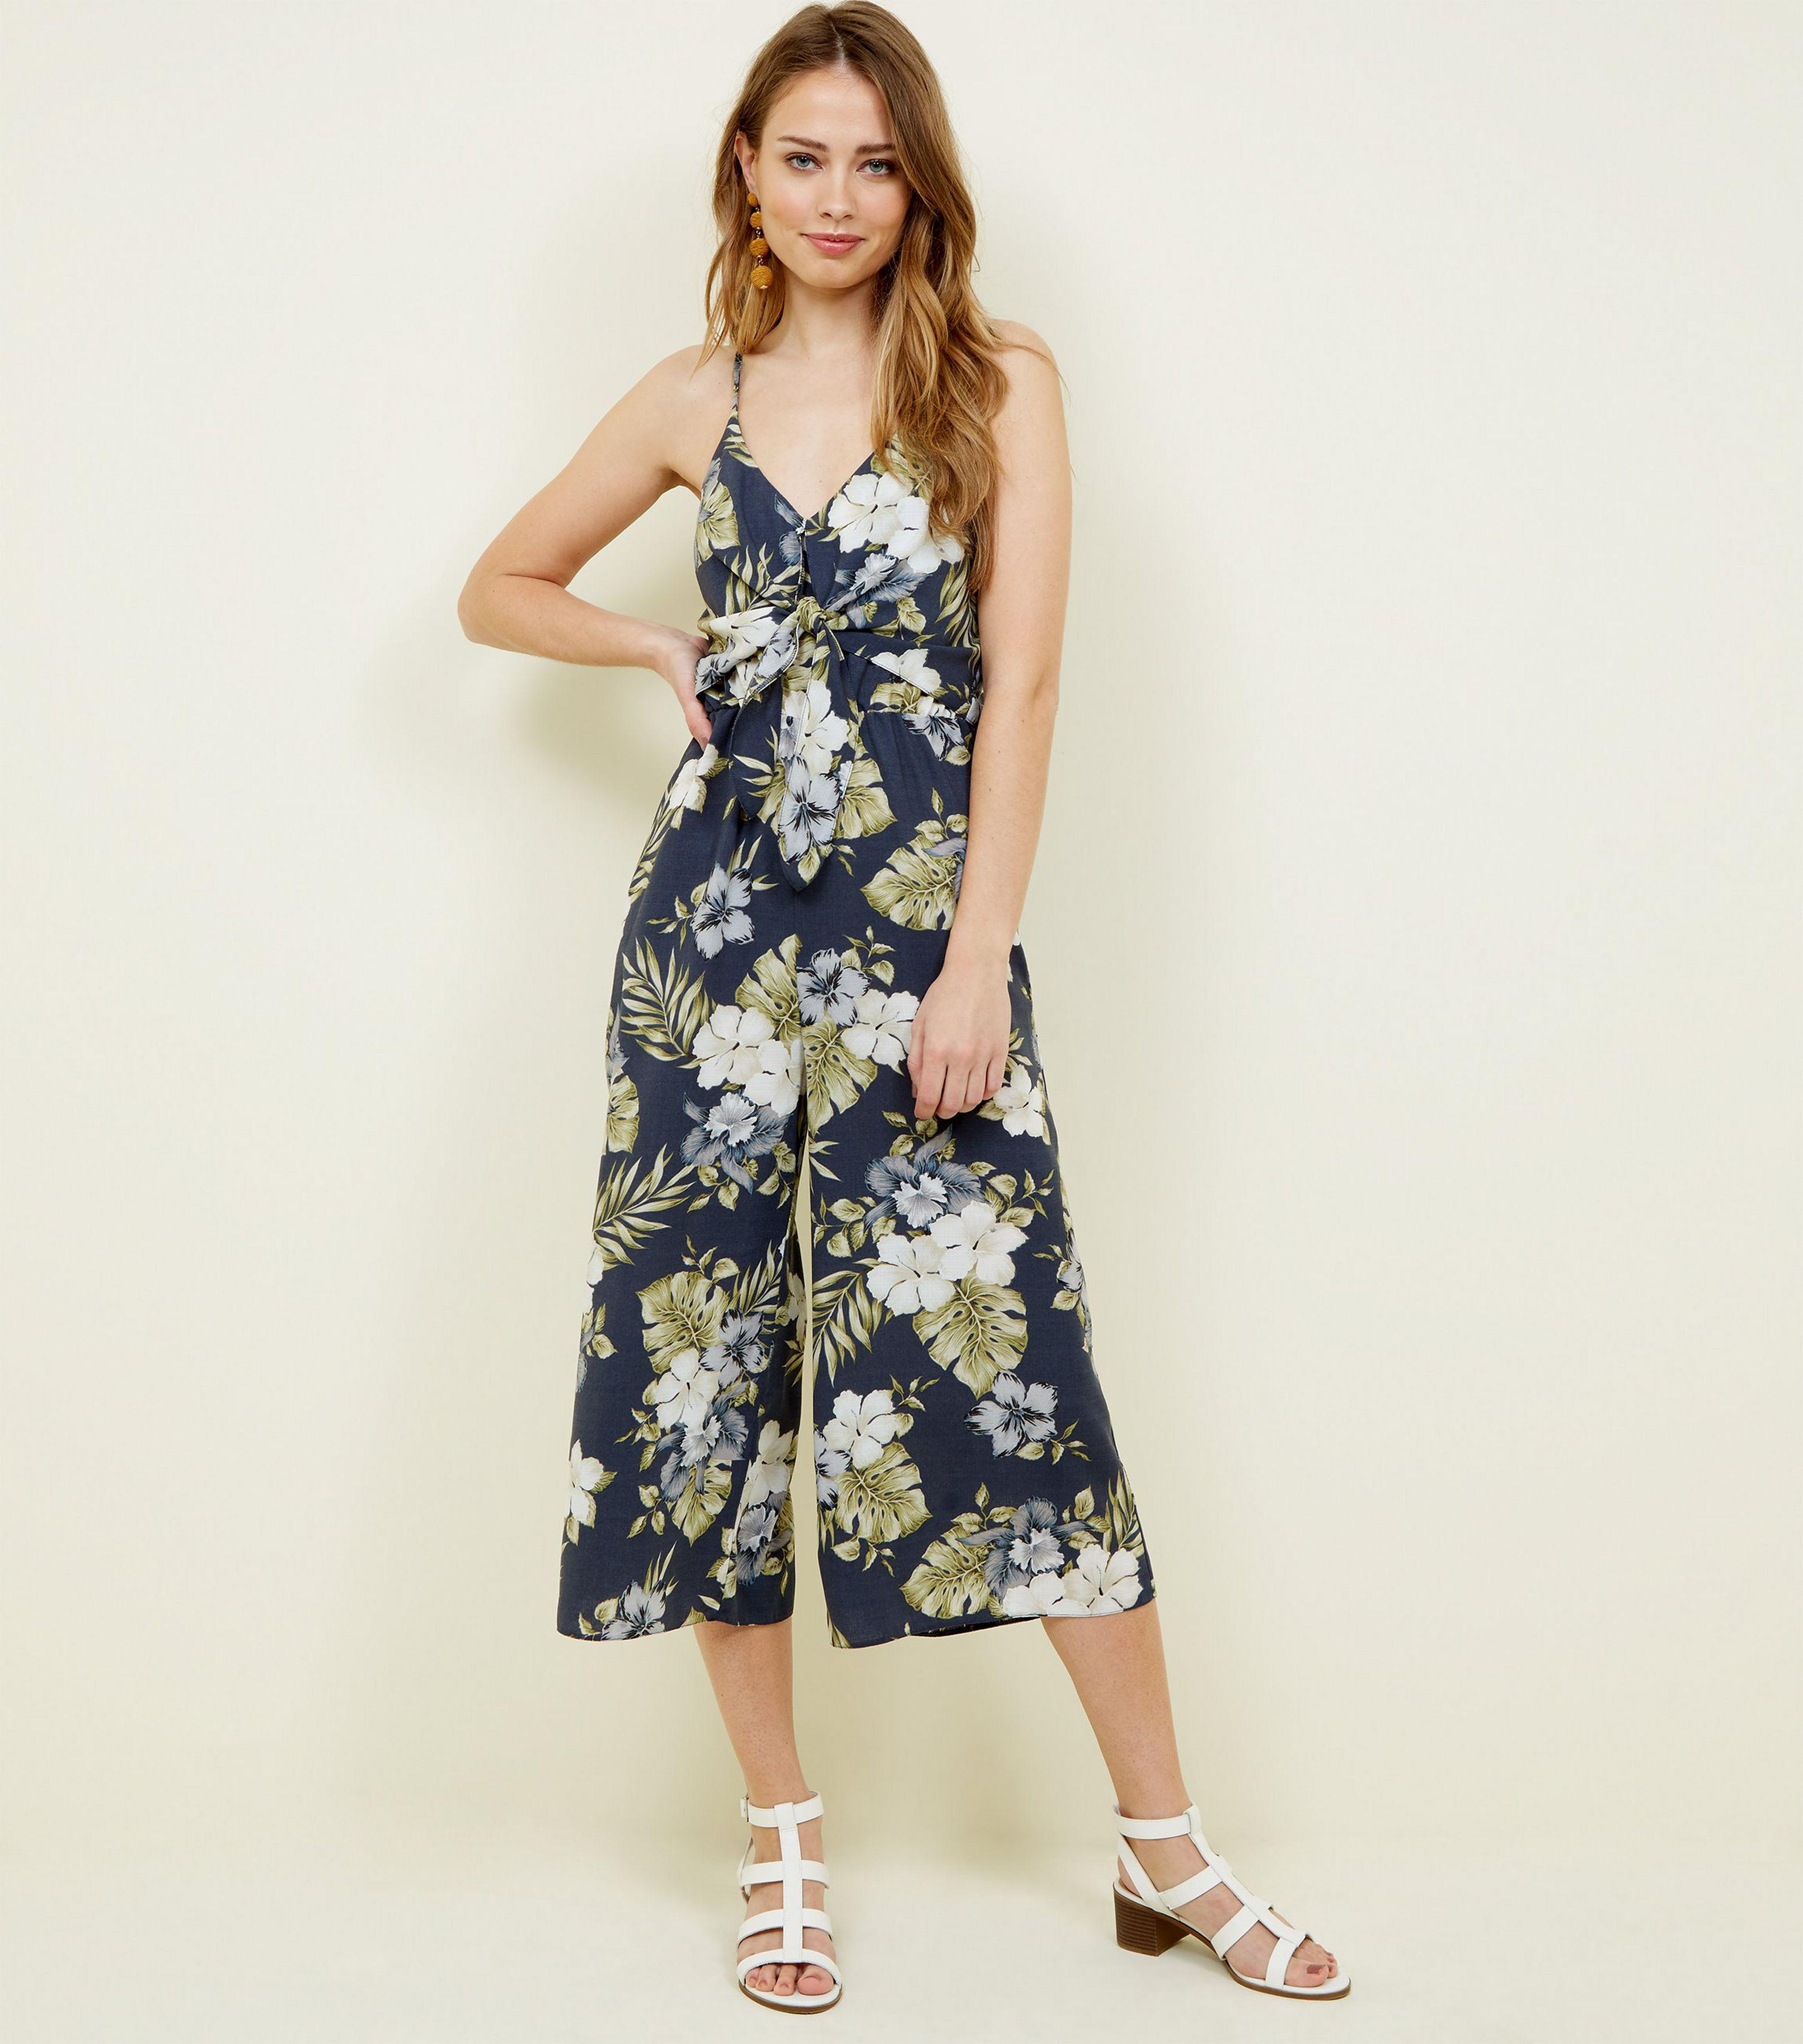 a5b50df313 New Look Navy Tropical Print Tie Front Culotte Jumpsuit in Blue - Lyst